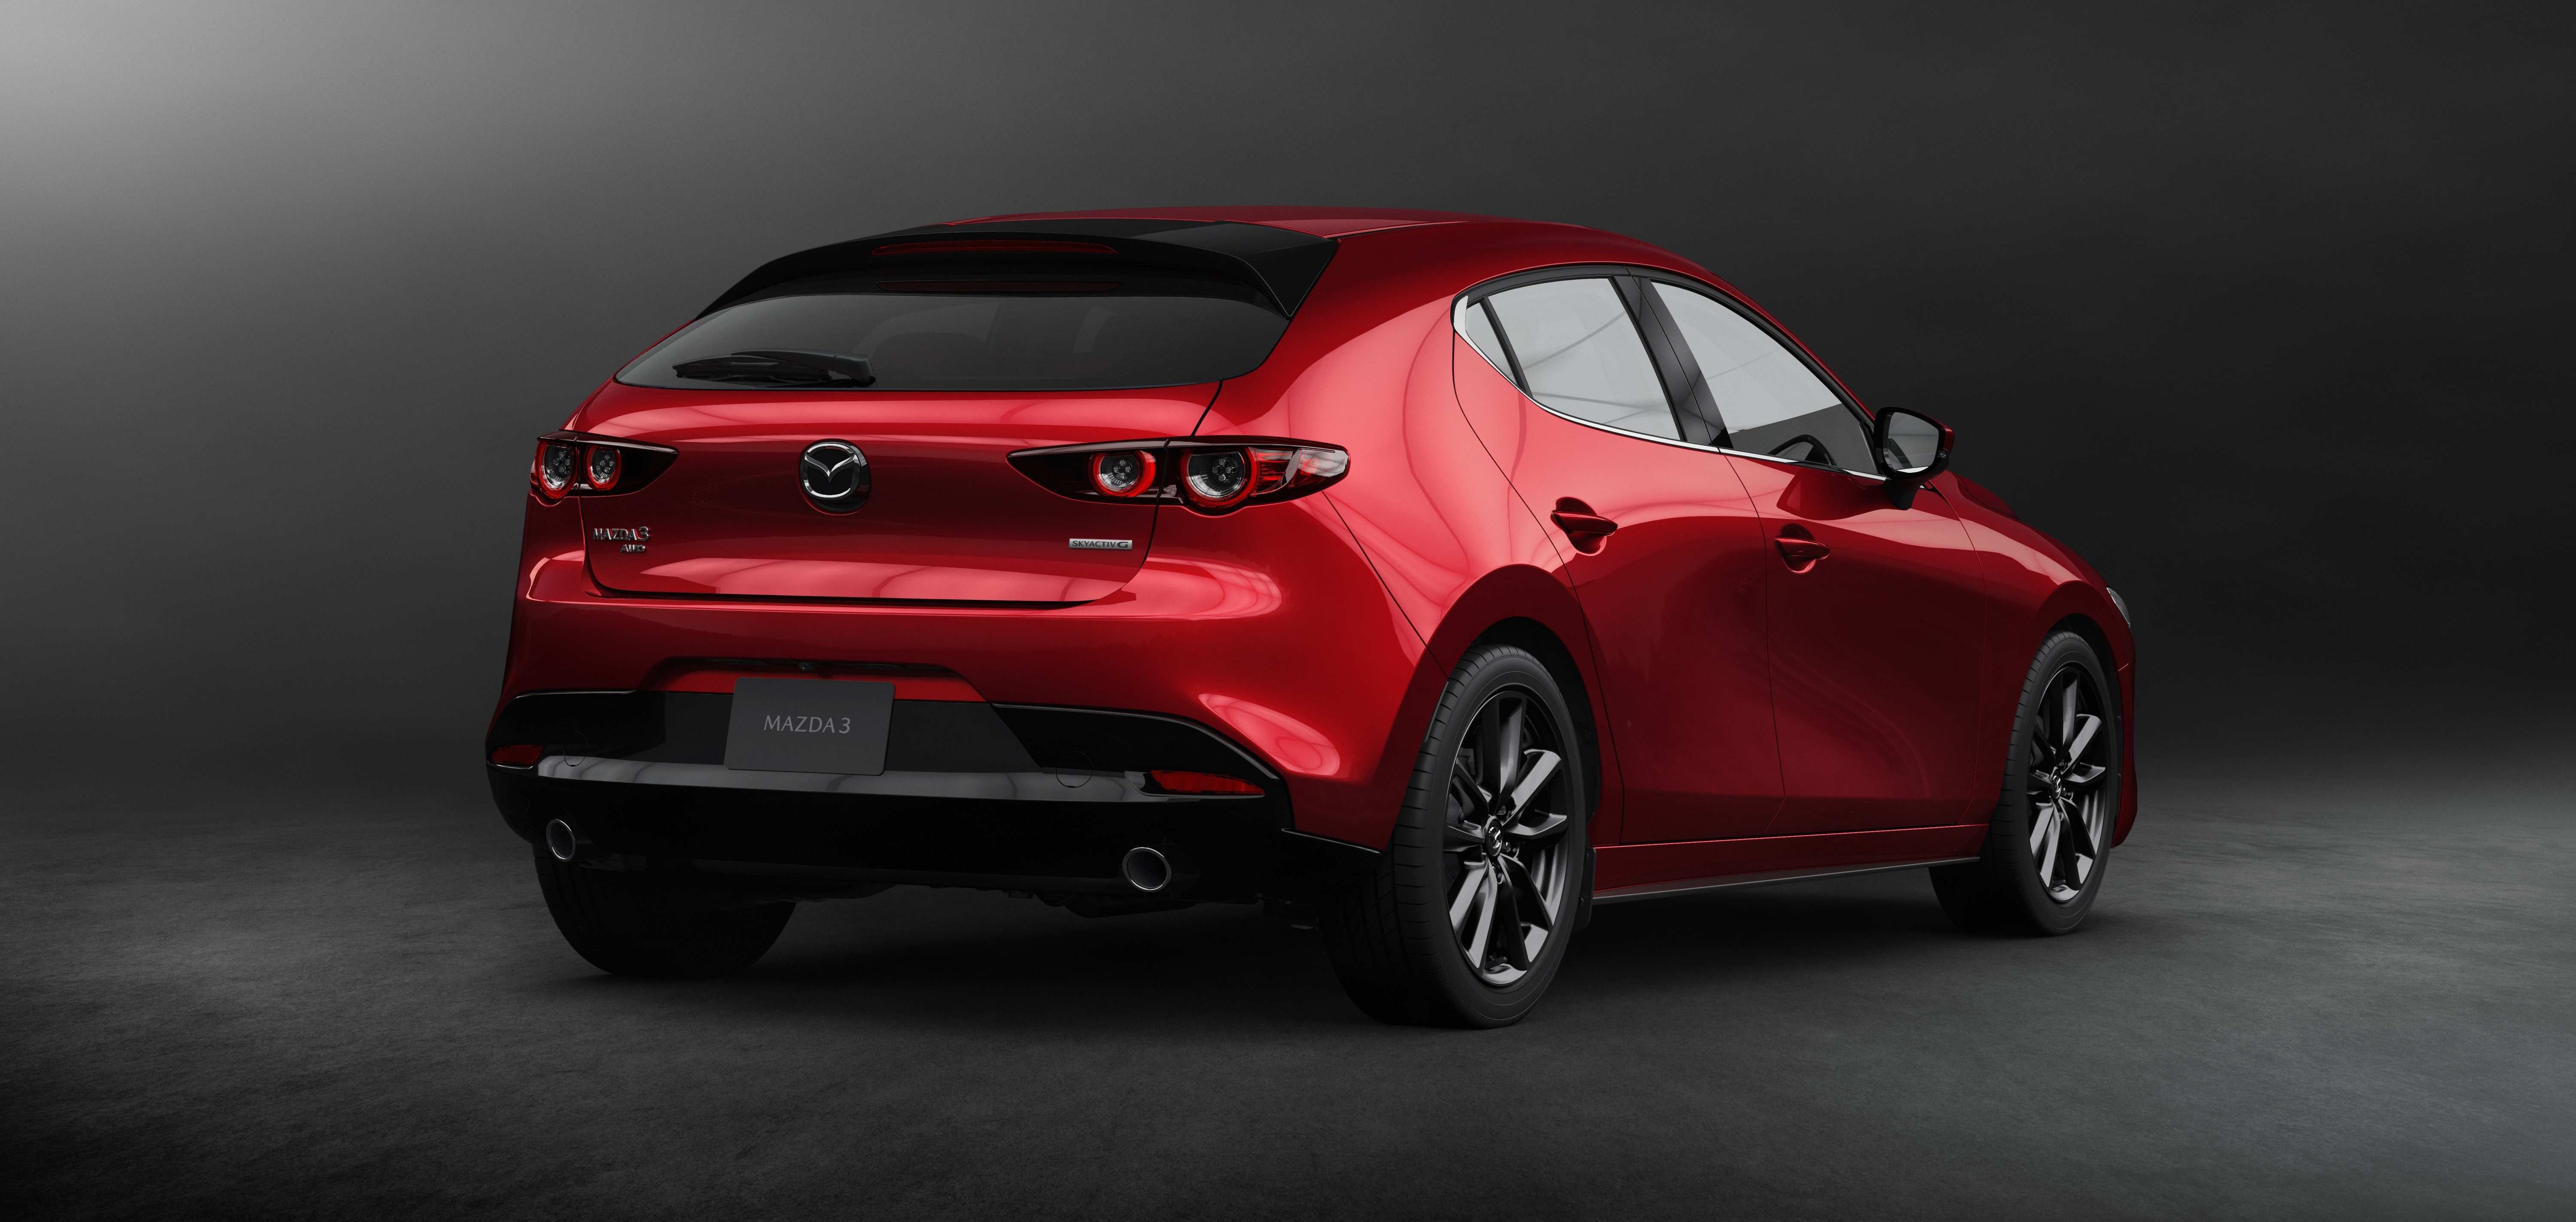 51 All New Mazda 3 2019 Gt Release